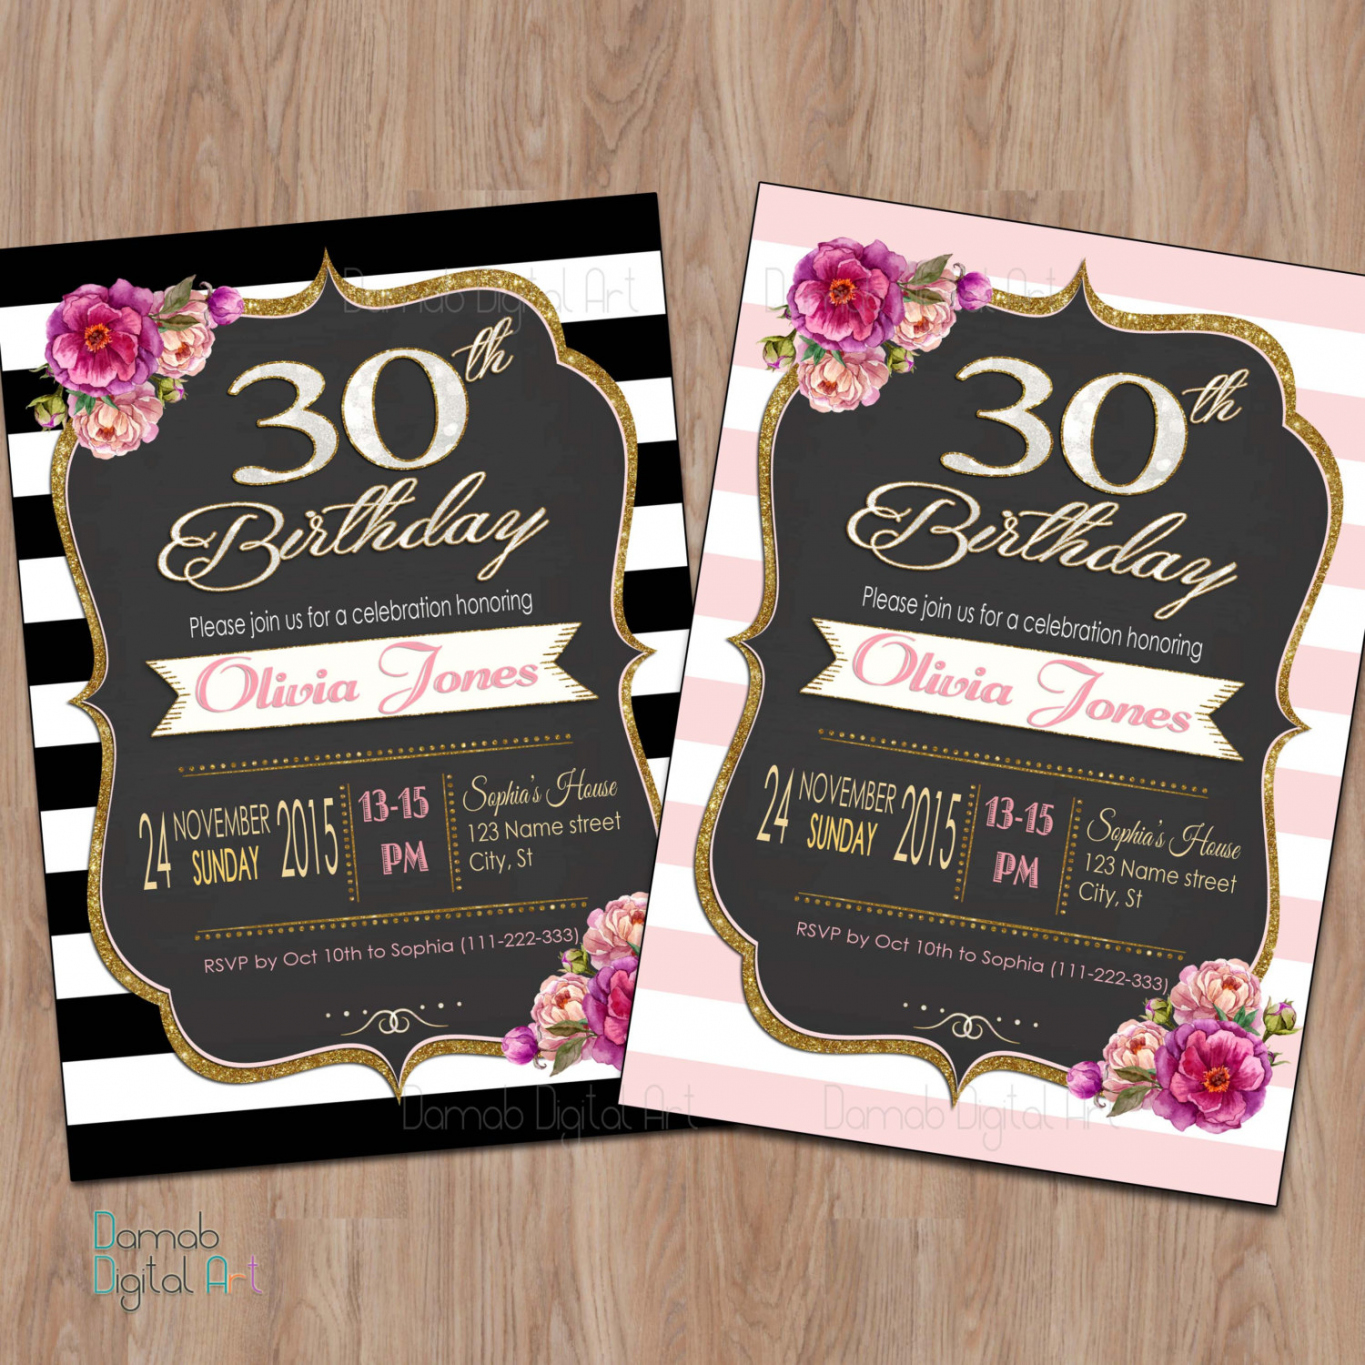 30th birthday invitations with photo ; new-30th-birthday-party-invitations-for-her-4k